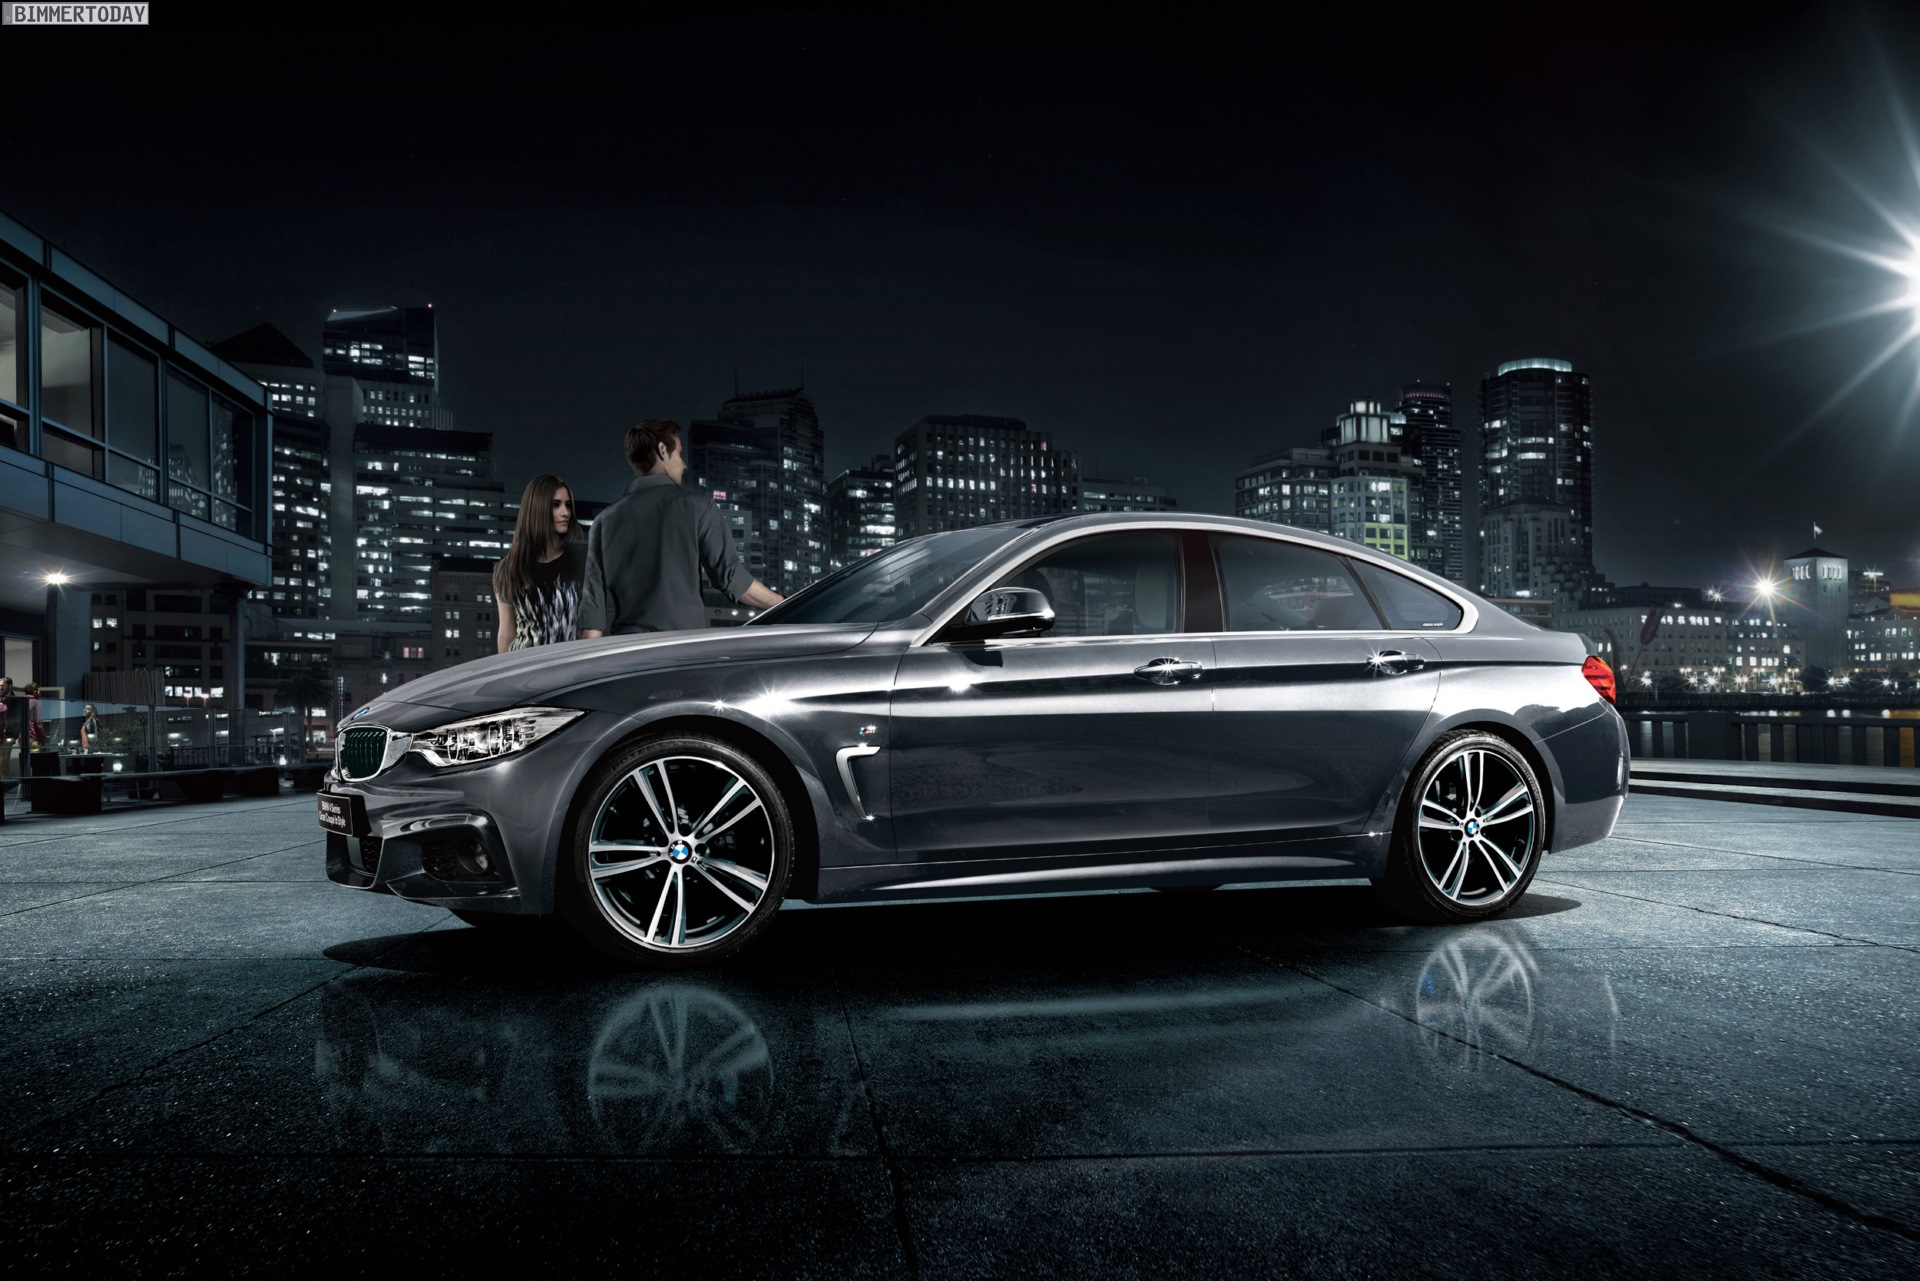 Bmw 4er gran coup in style sondermodell exklusiv f r japan for Bmw 4er gran coupe m paket